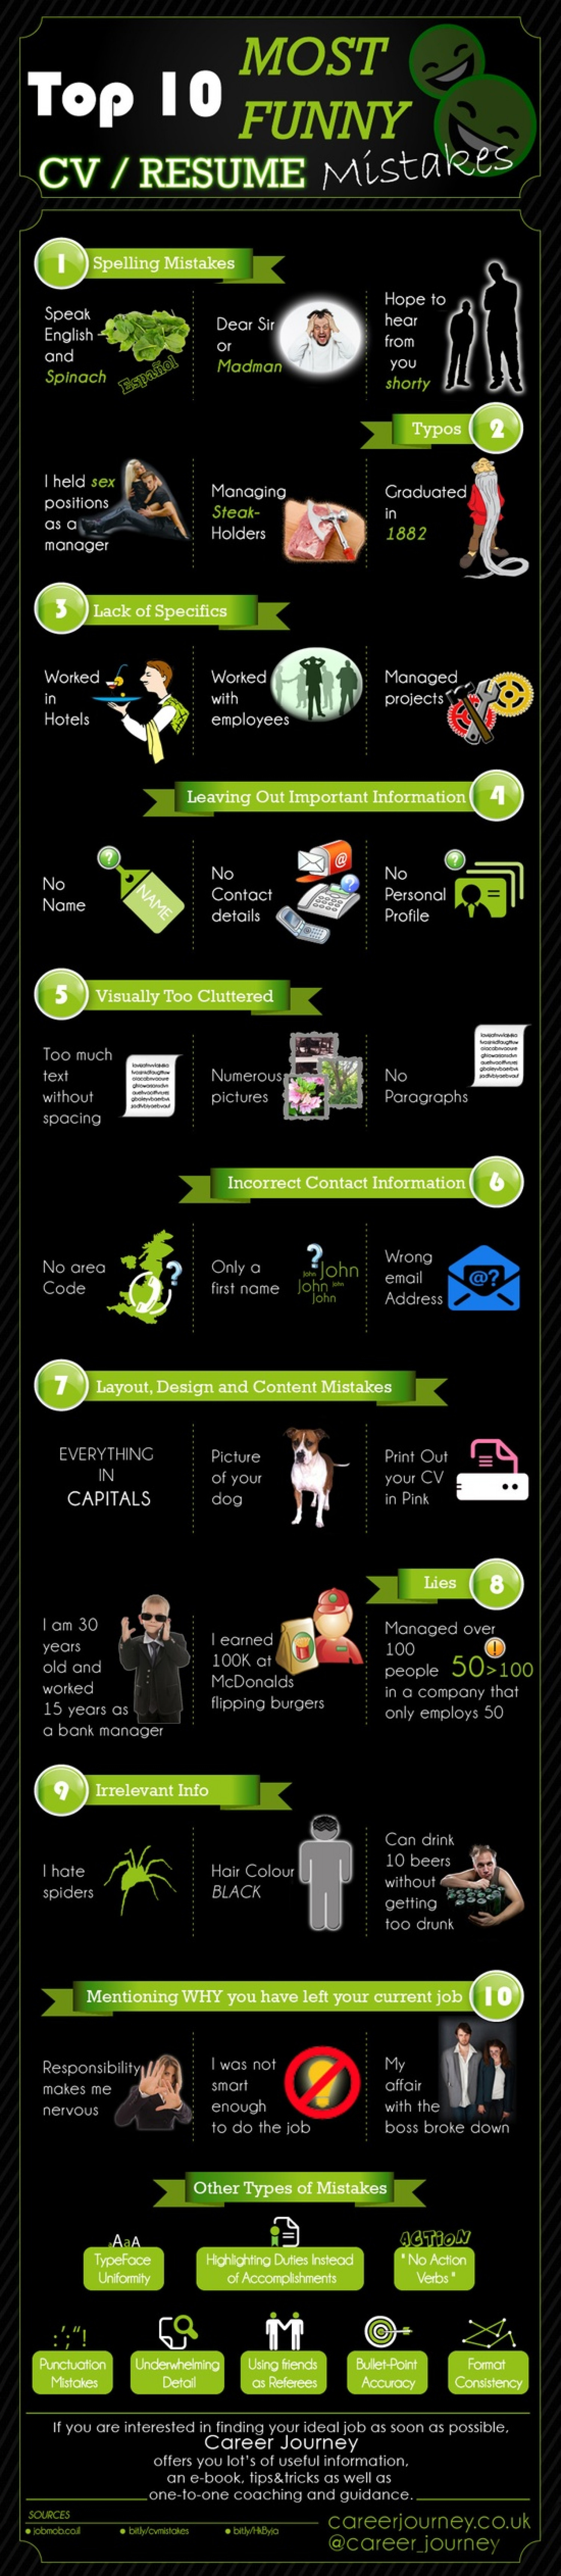 Most Funny Mistakes Made in Resume or CV Infographic